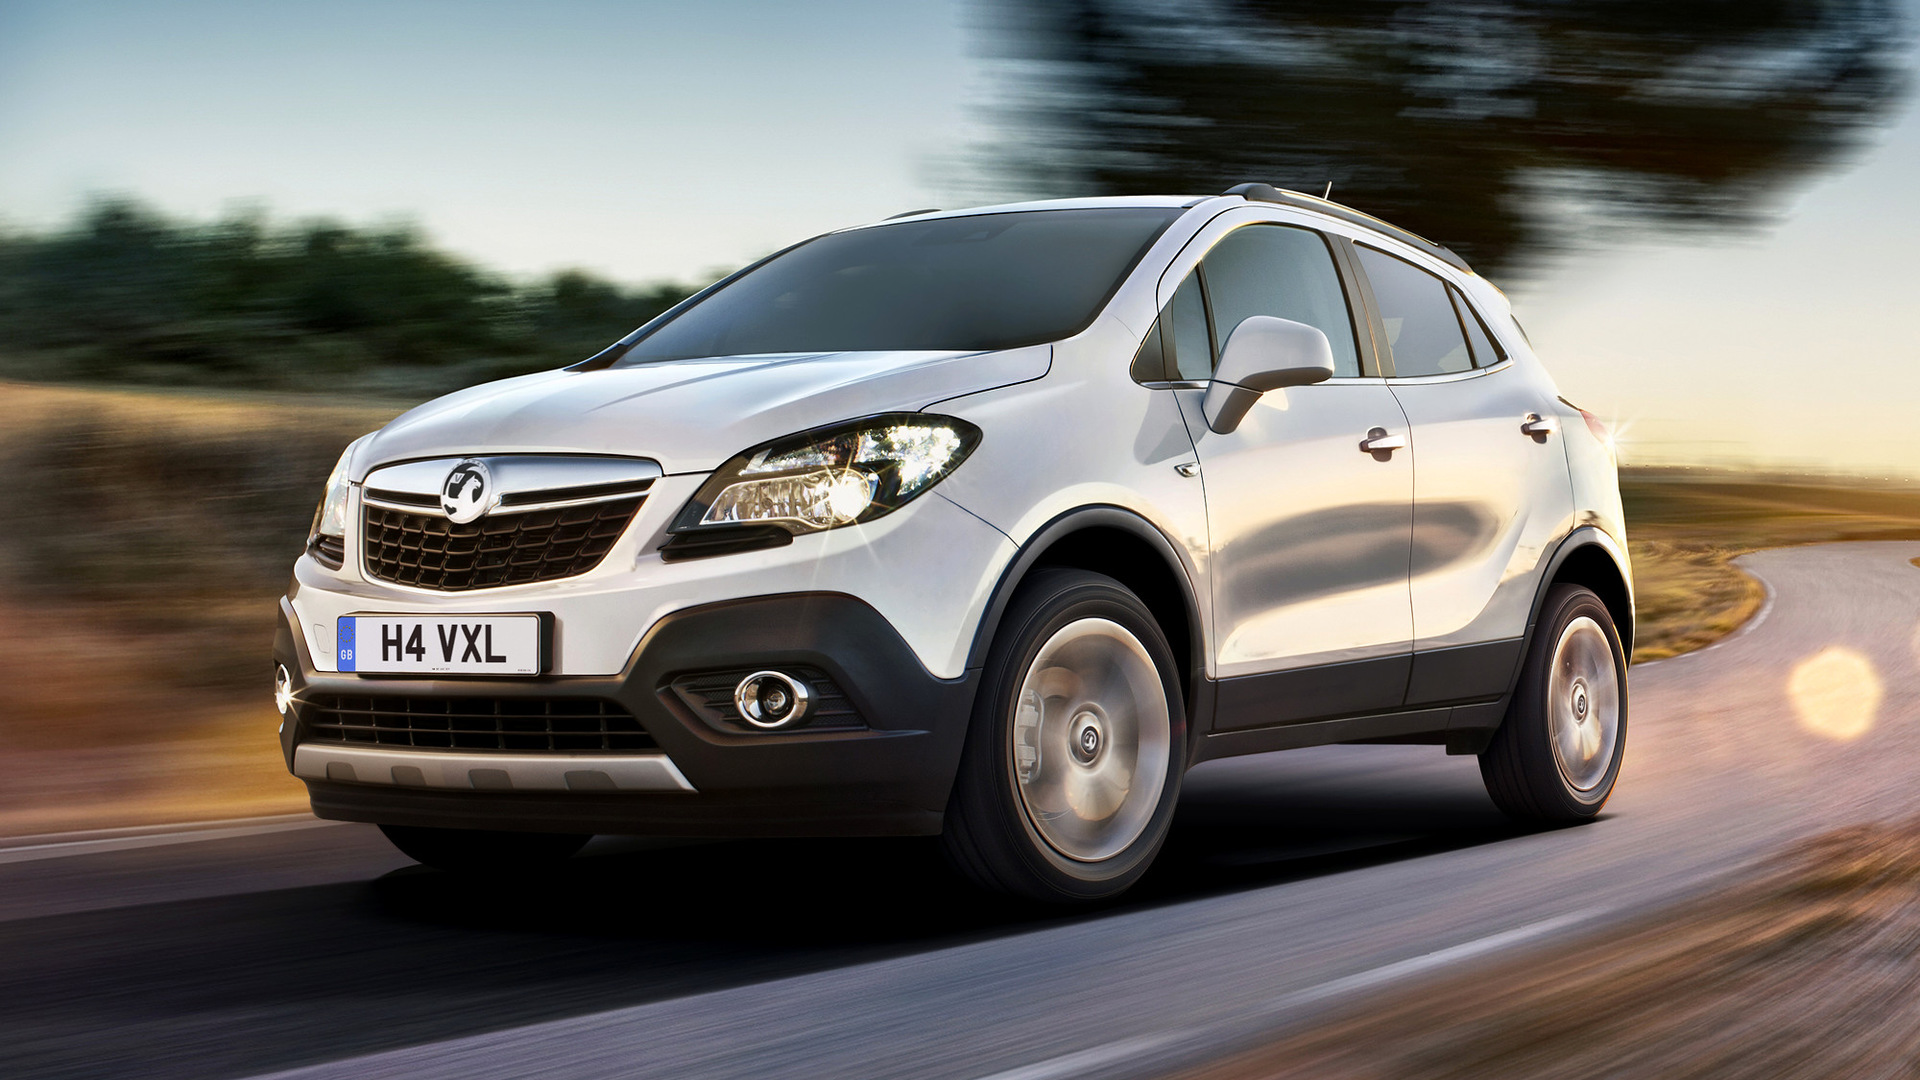 vauxhall mokka turbo 4x4 2012 wallpapers and hd images car pixel. Black Bedroom Furniture Sets. Home Design Ideas